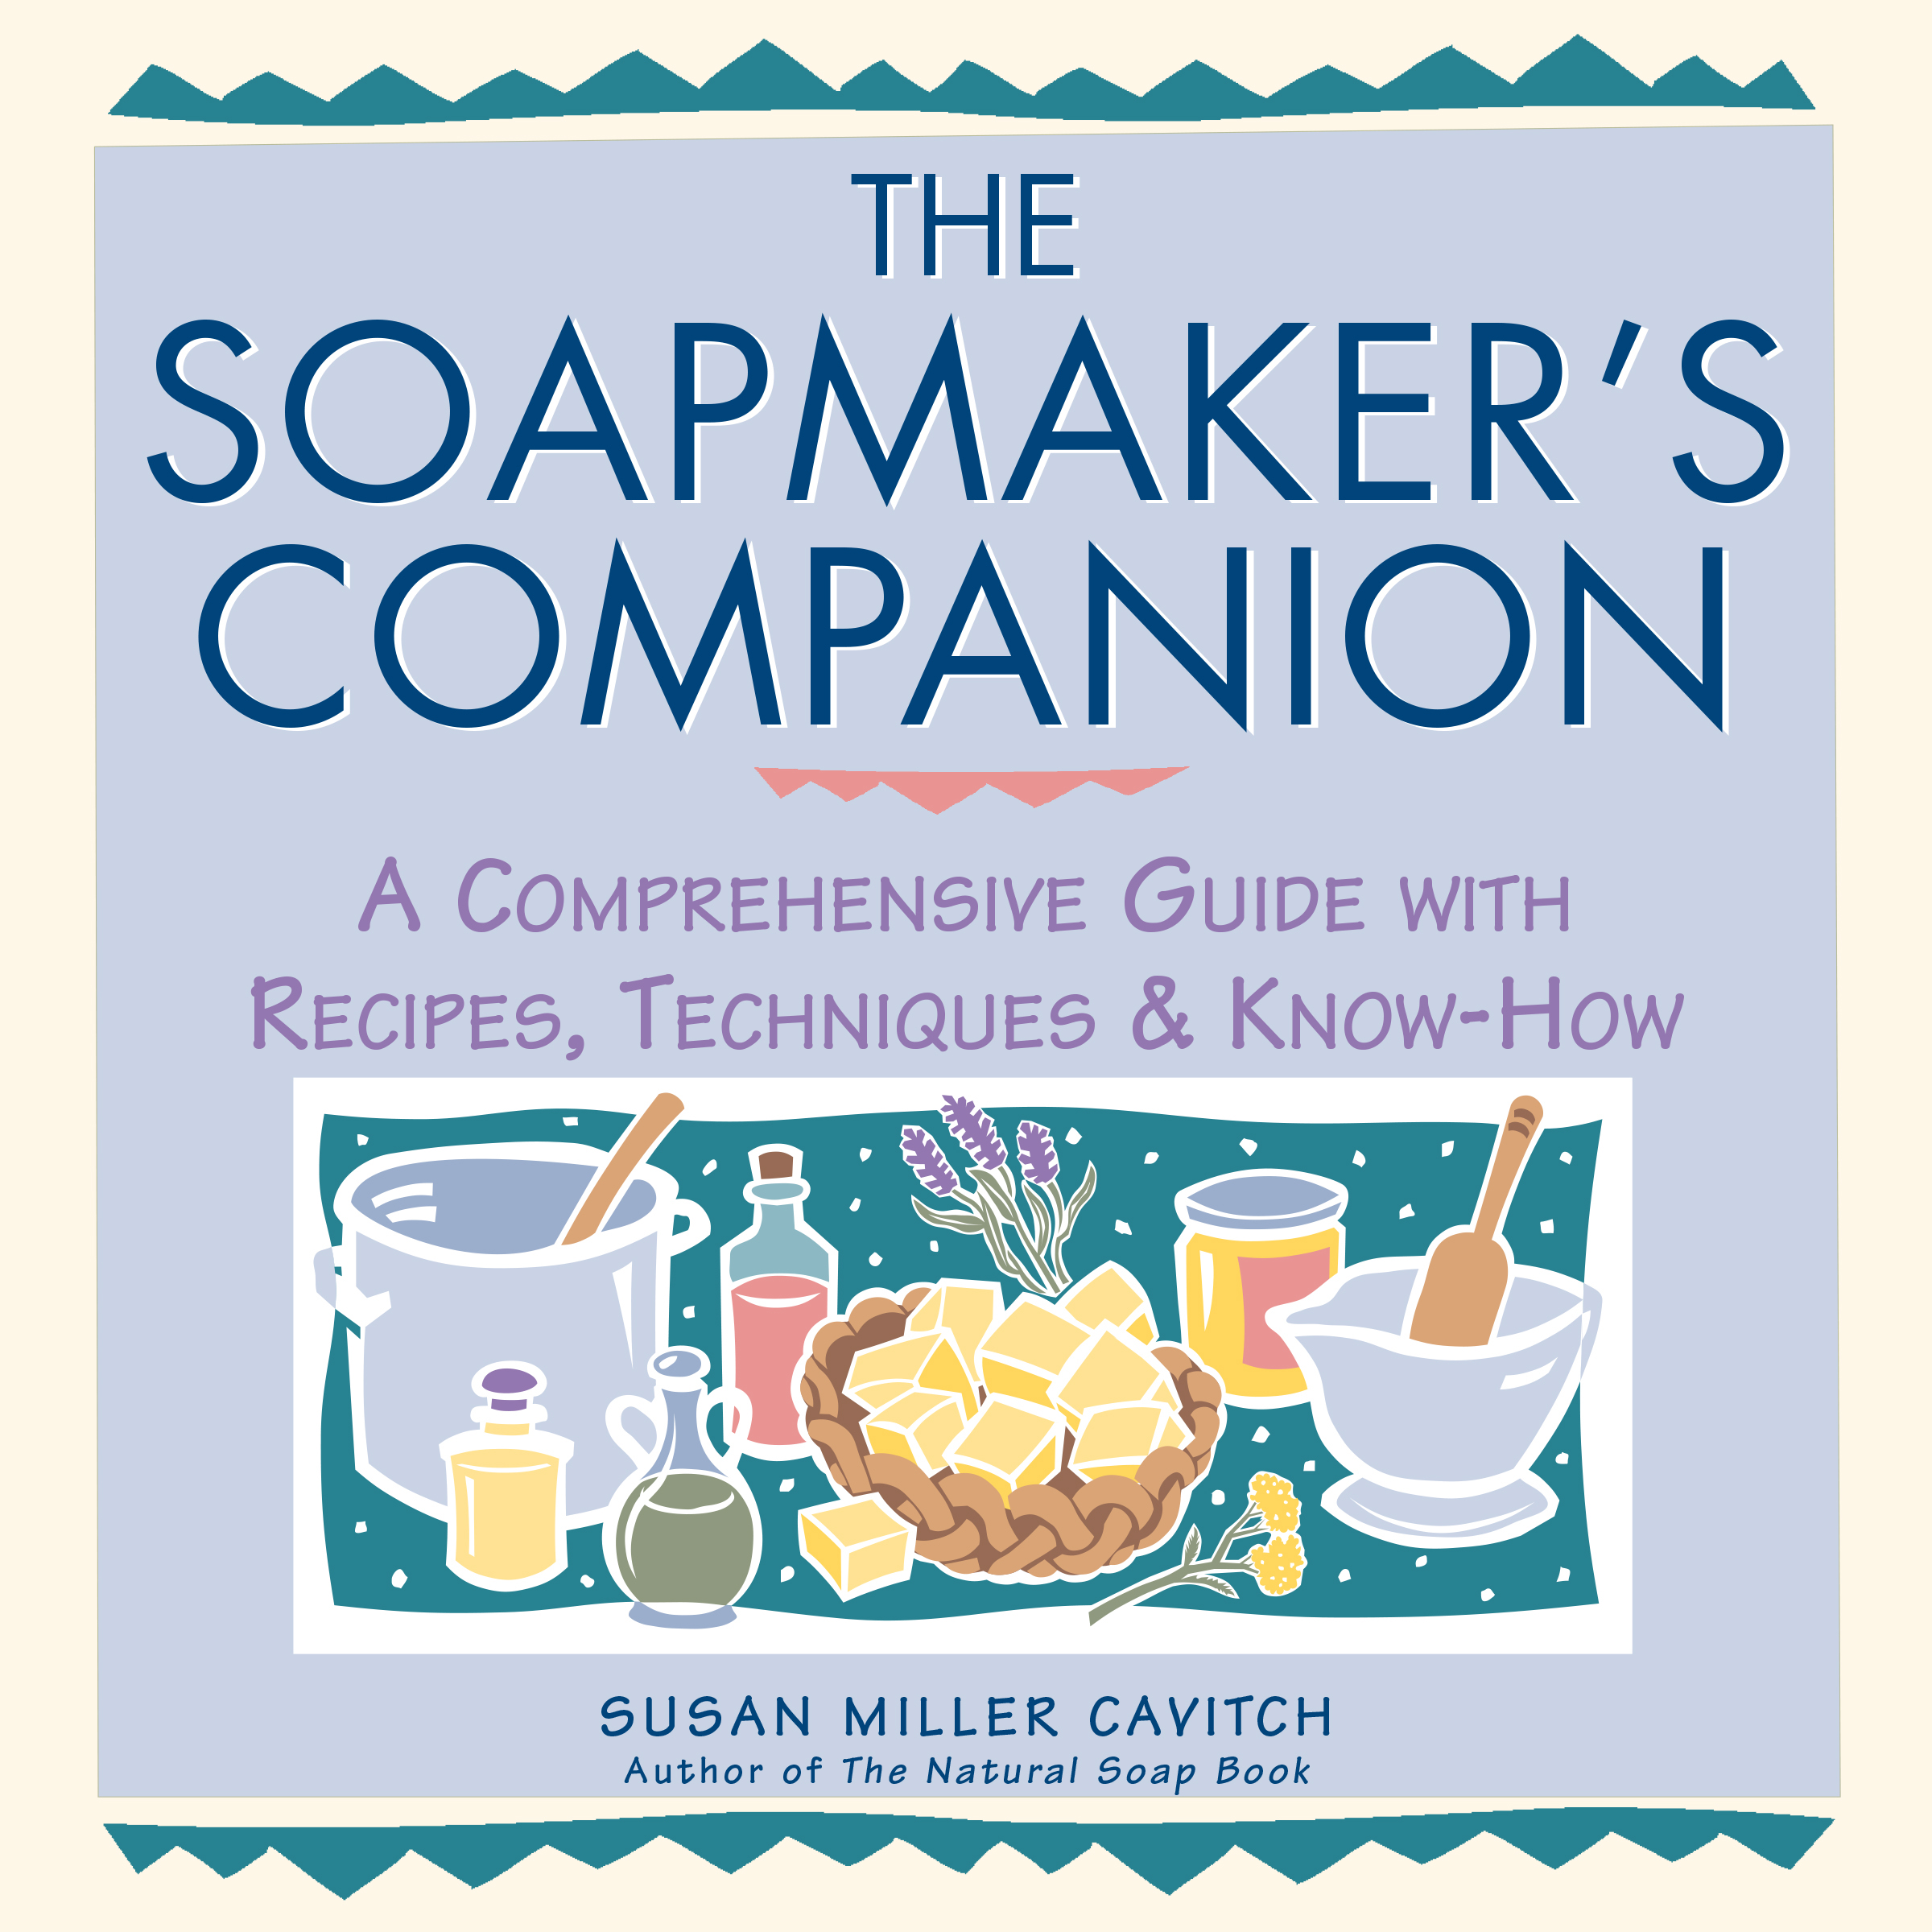 The Soapmaker's Companion A Comprehensive Guide with Recipes, Techniques & Know-How - Susan Miller Cavitch